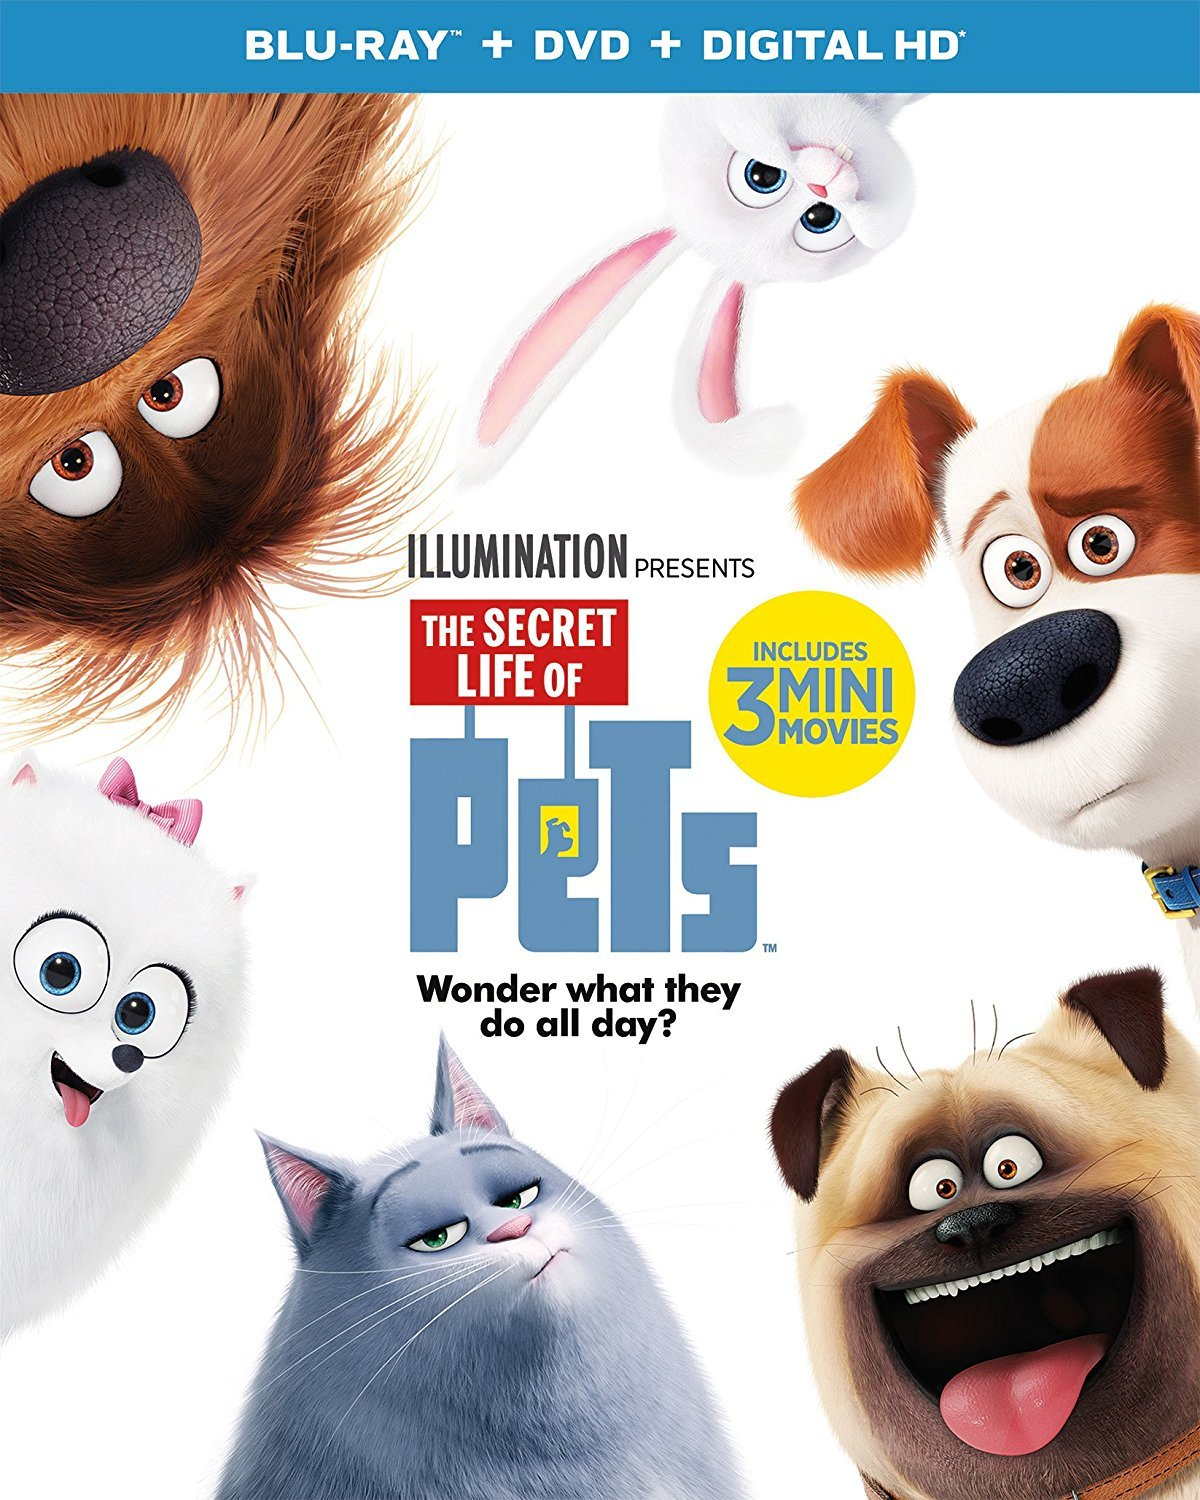 The Secret Life of Pets [2016, Blu-ray + DVD + Digital HD]